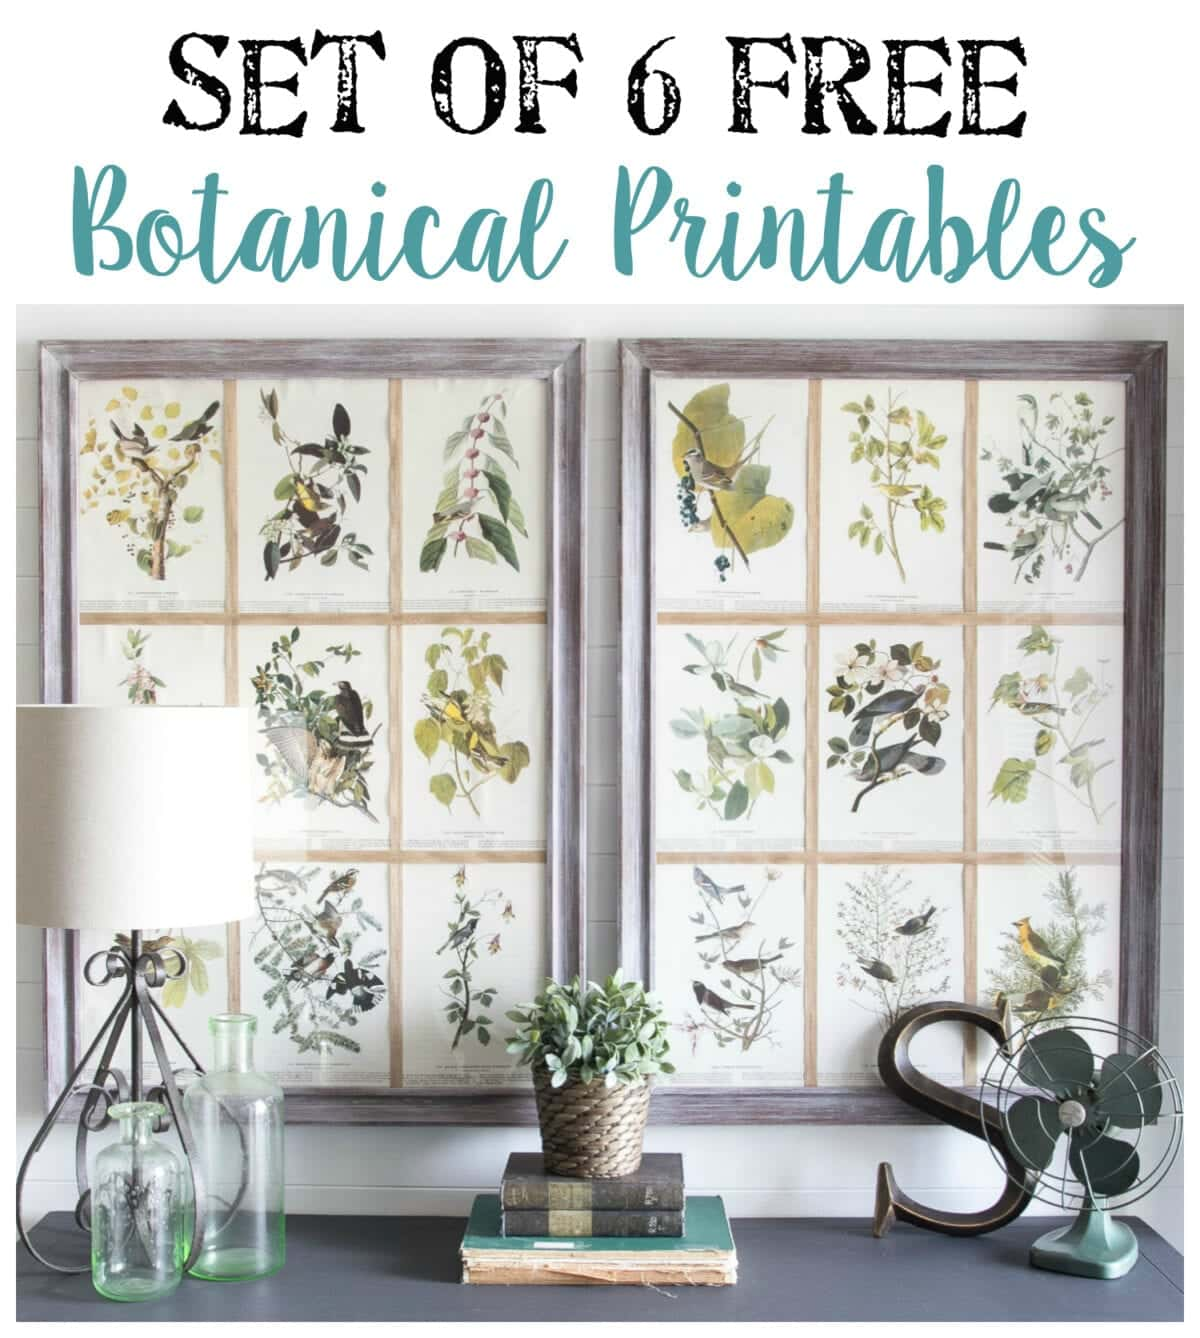 Bathroom wall art prints - Window Picture Frame And Free Botanical Printables Bless